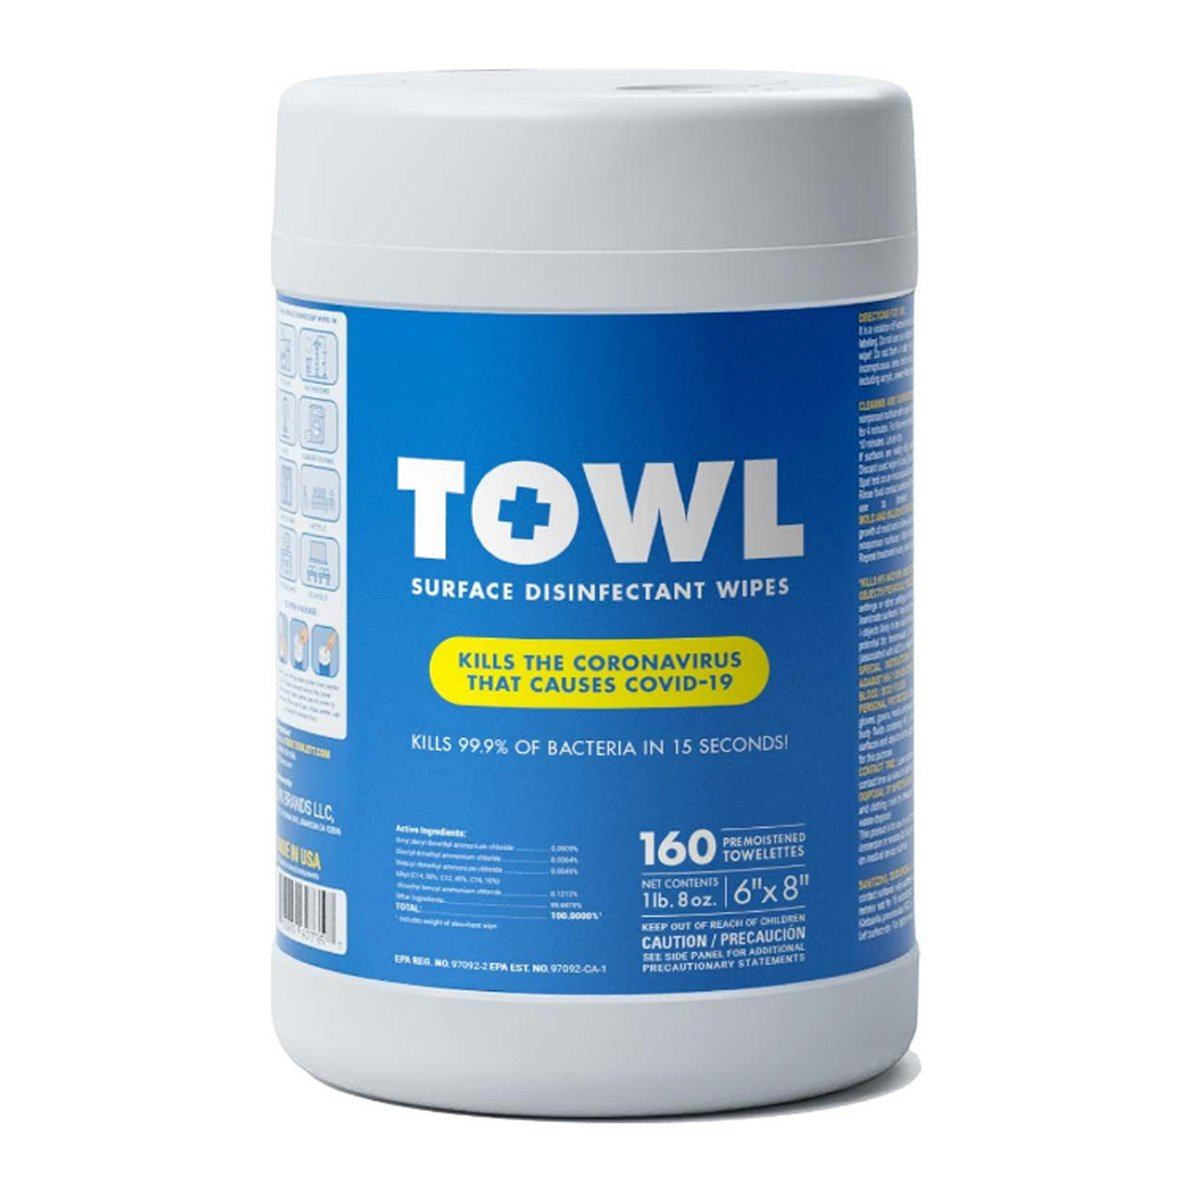 TOWL Surface Disinfectant Wipes